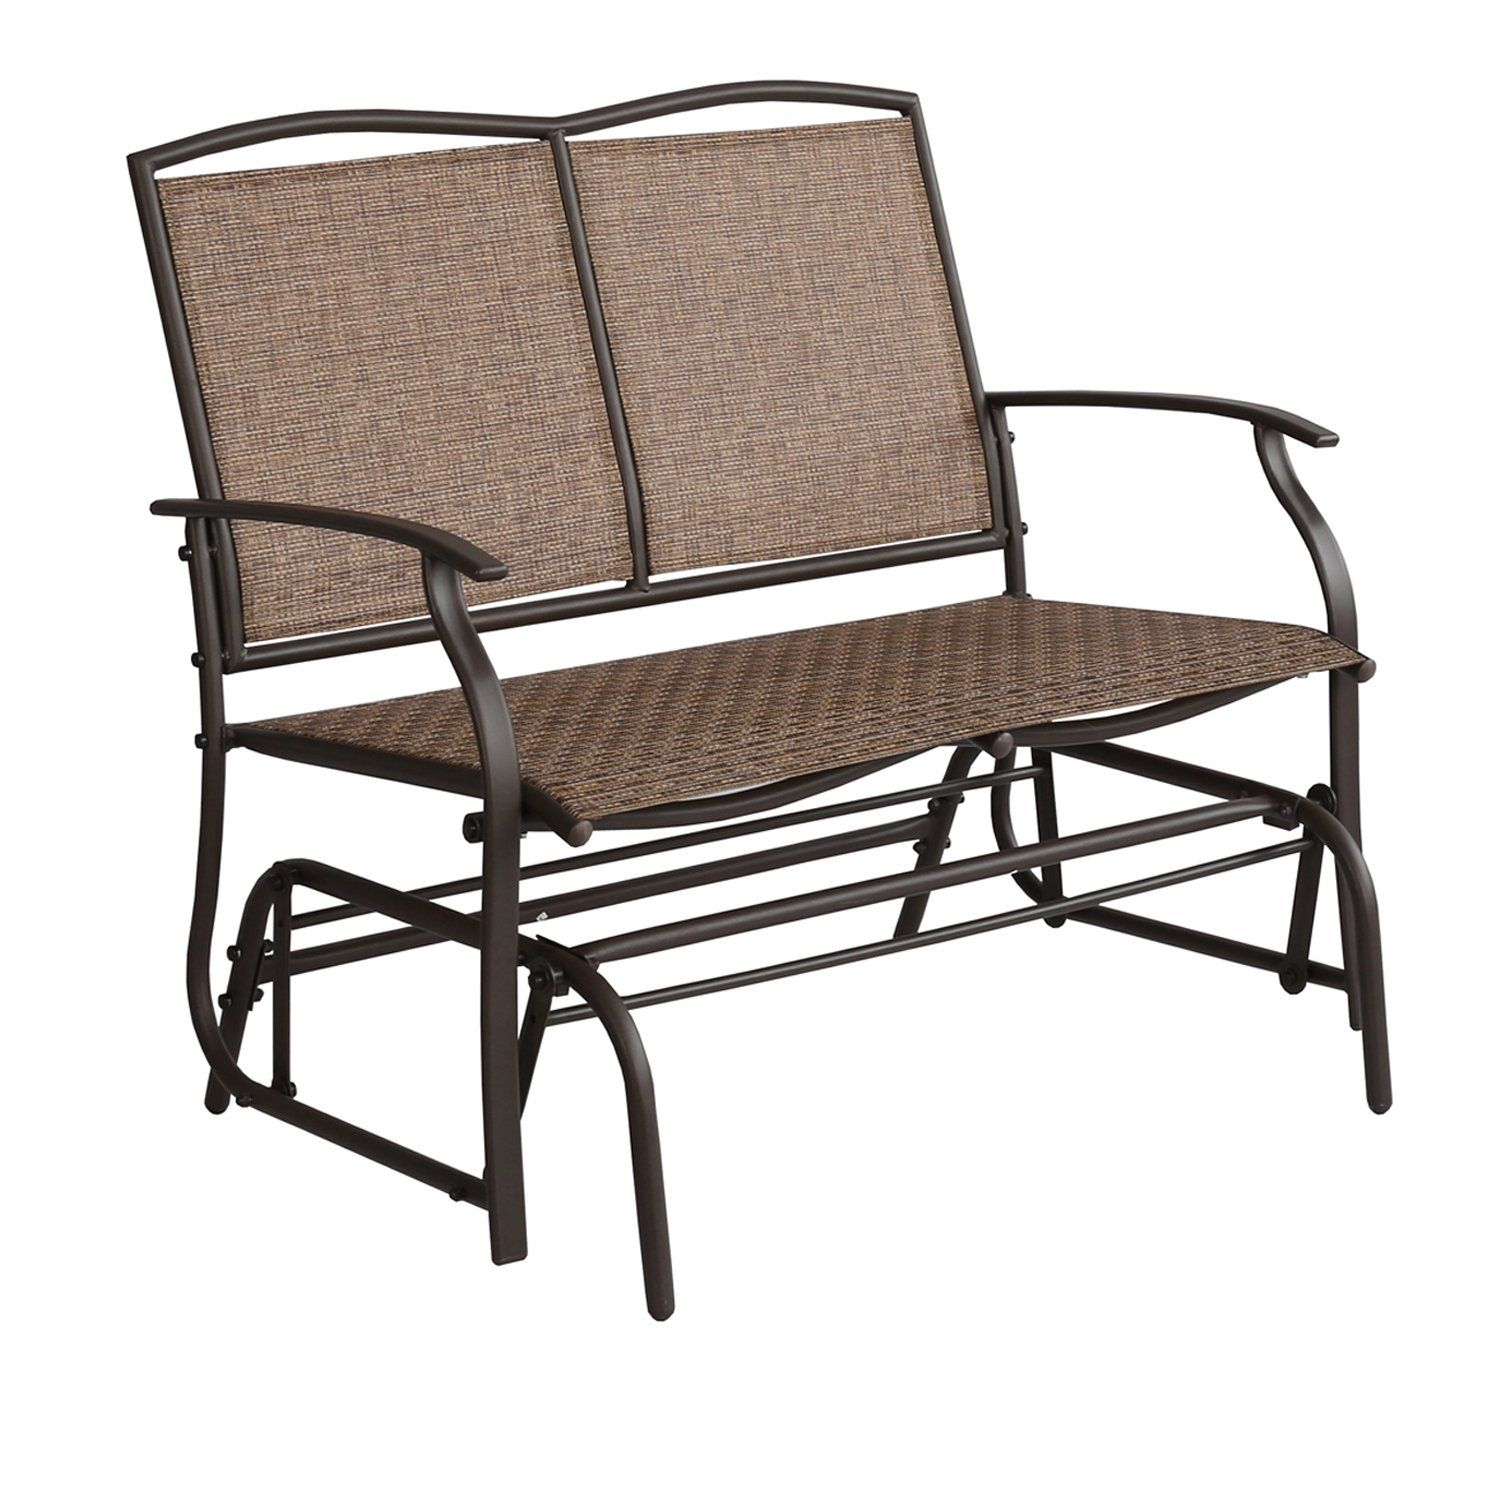 Patio Tree Patio Swing Glider Bench For 2 Person All In Outdoor Patio Swing Glider Bench Chairs (View 11 of 25)